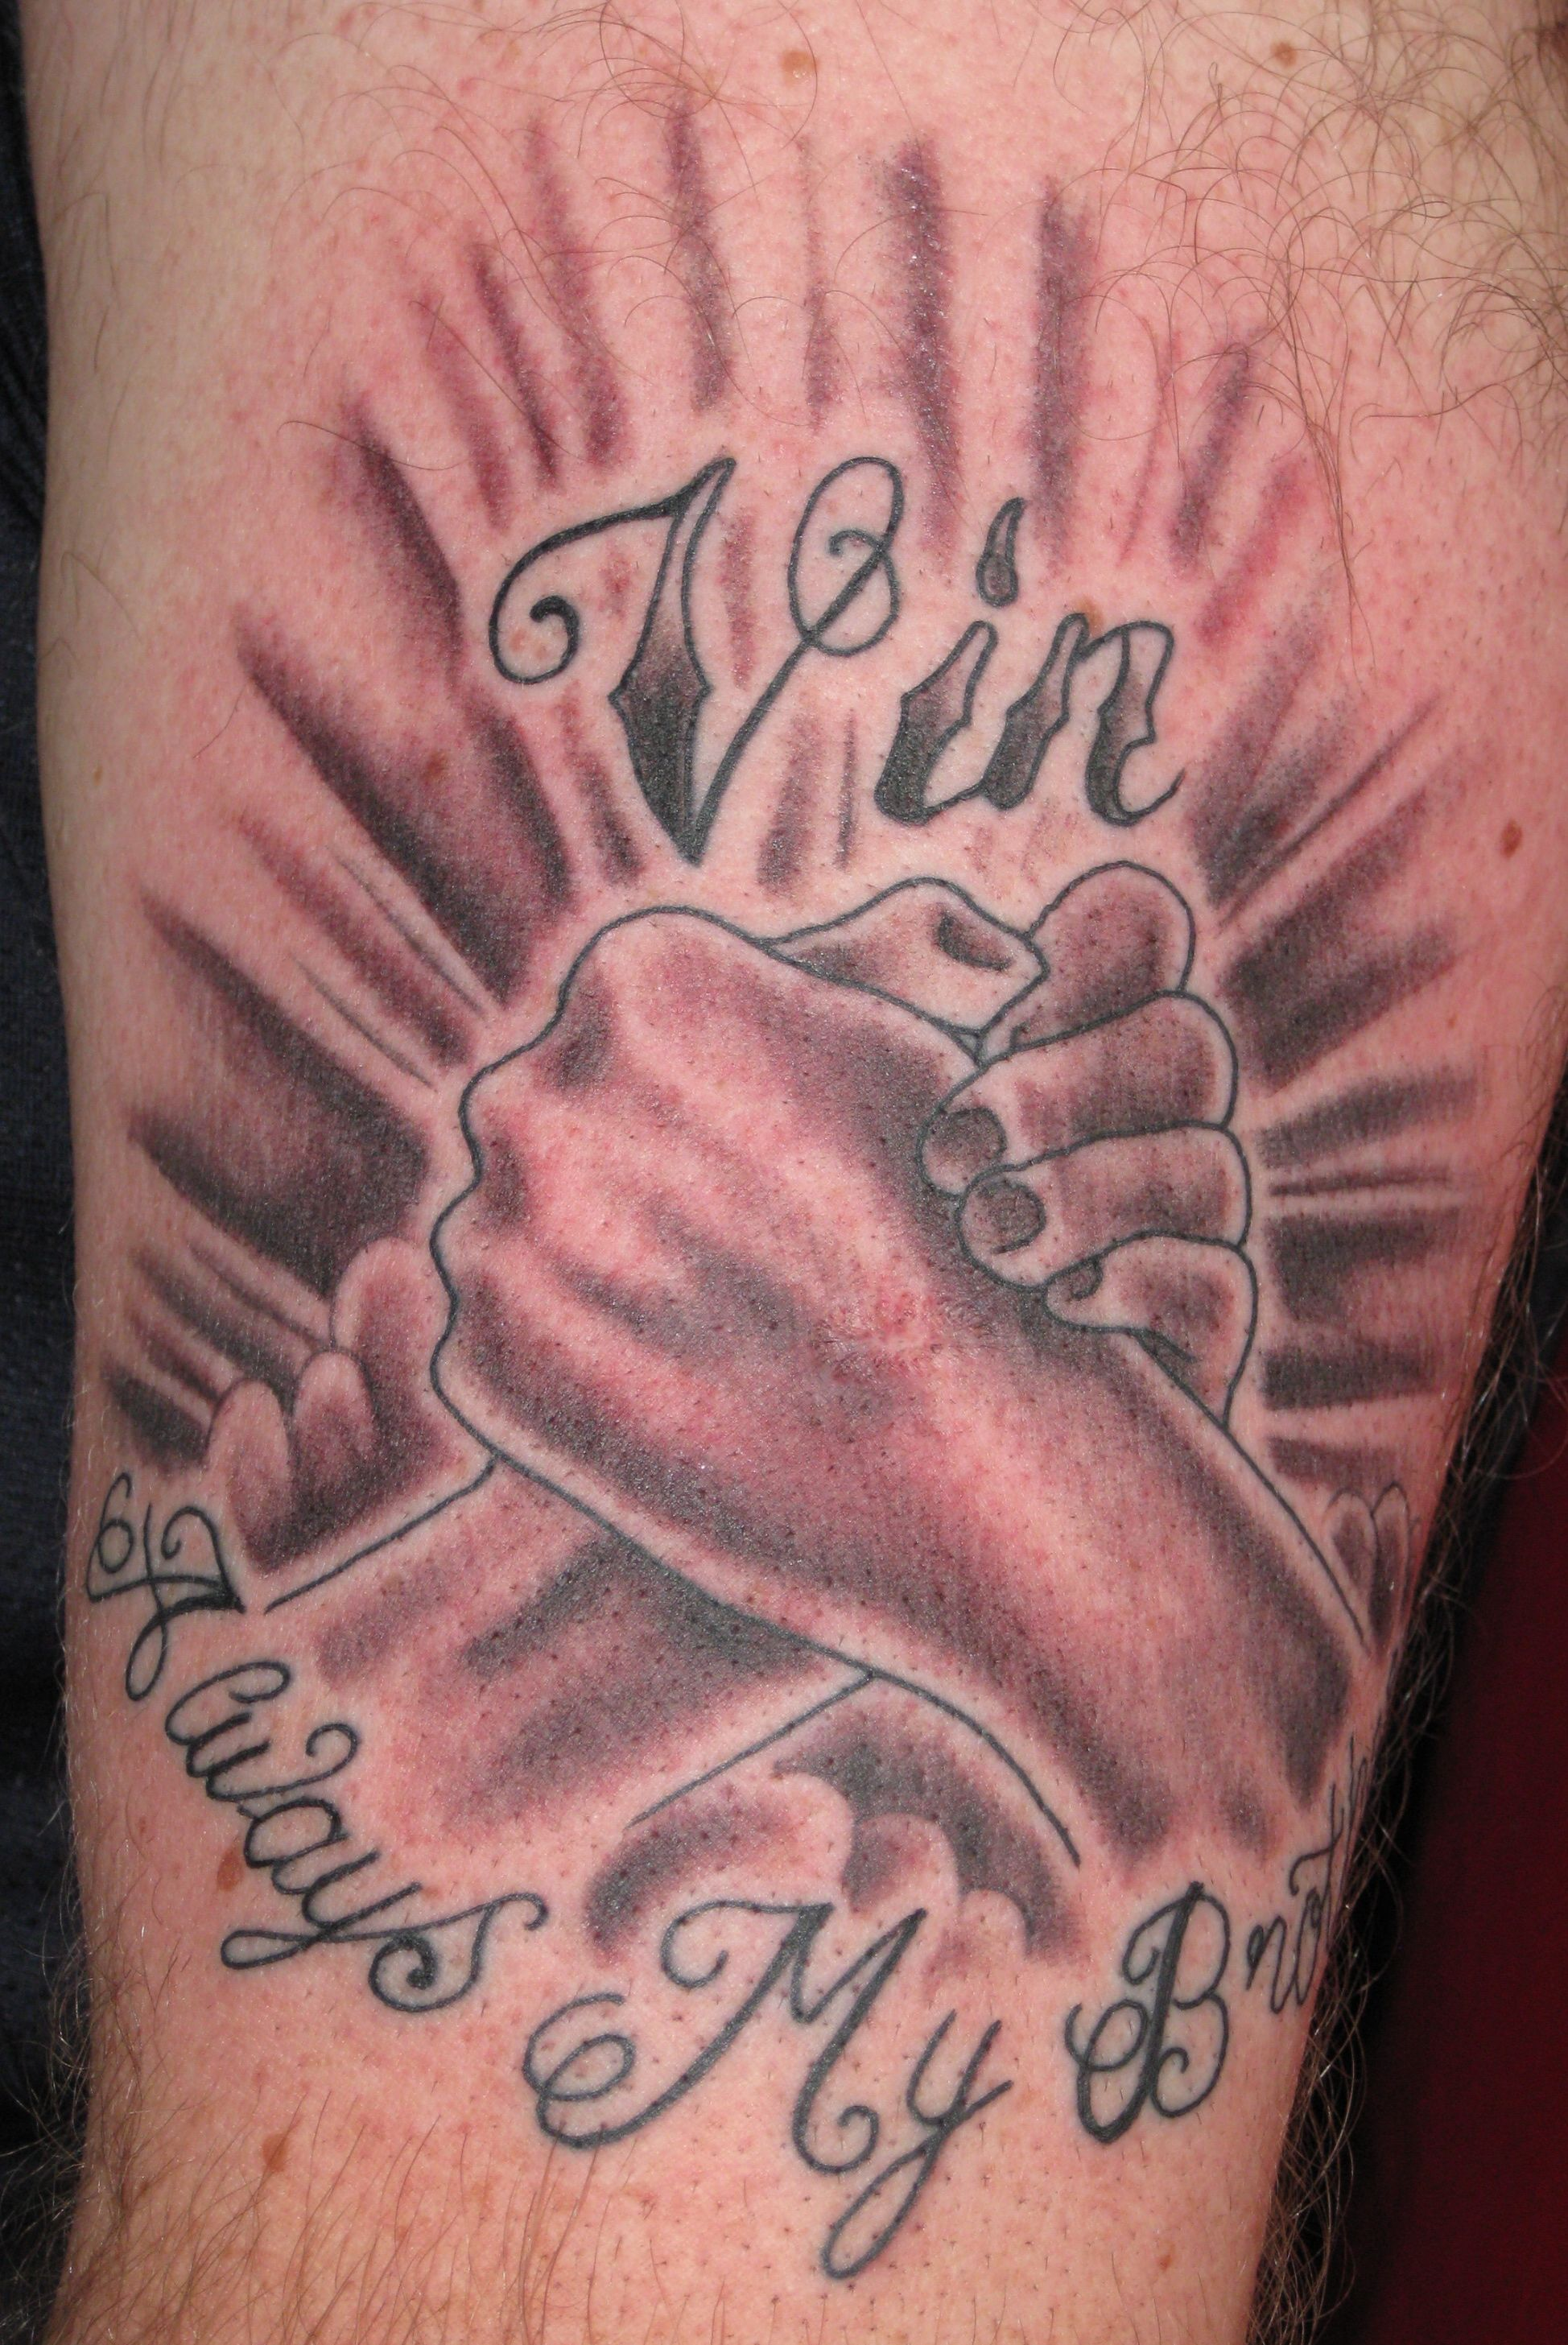 Brother brotherly hogarth liverpool love memorial for Tattoo for dead brother